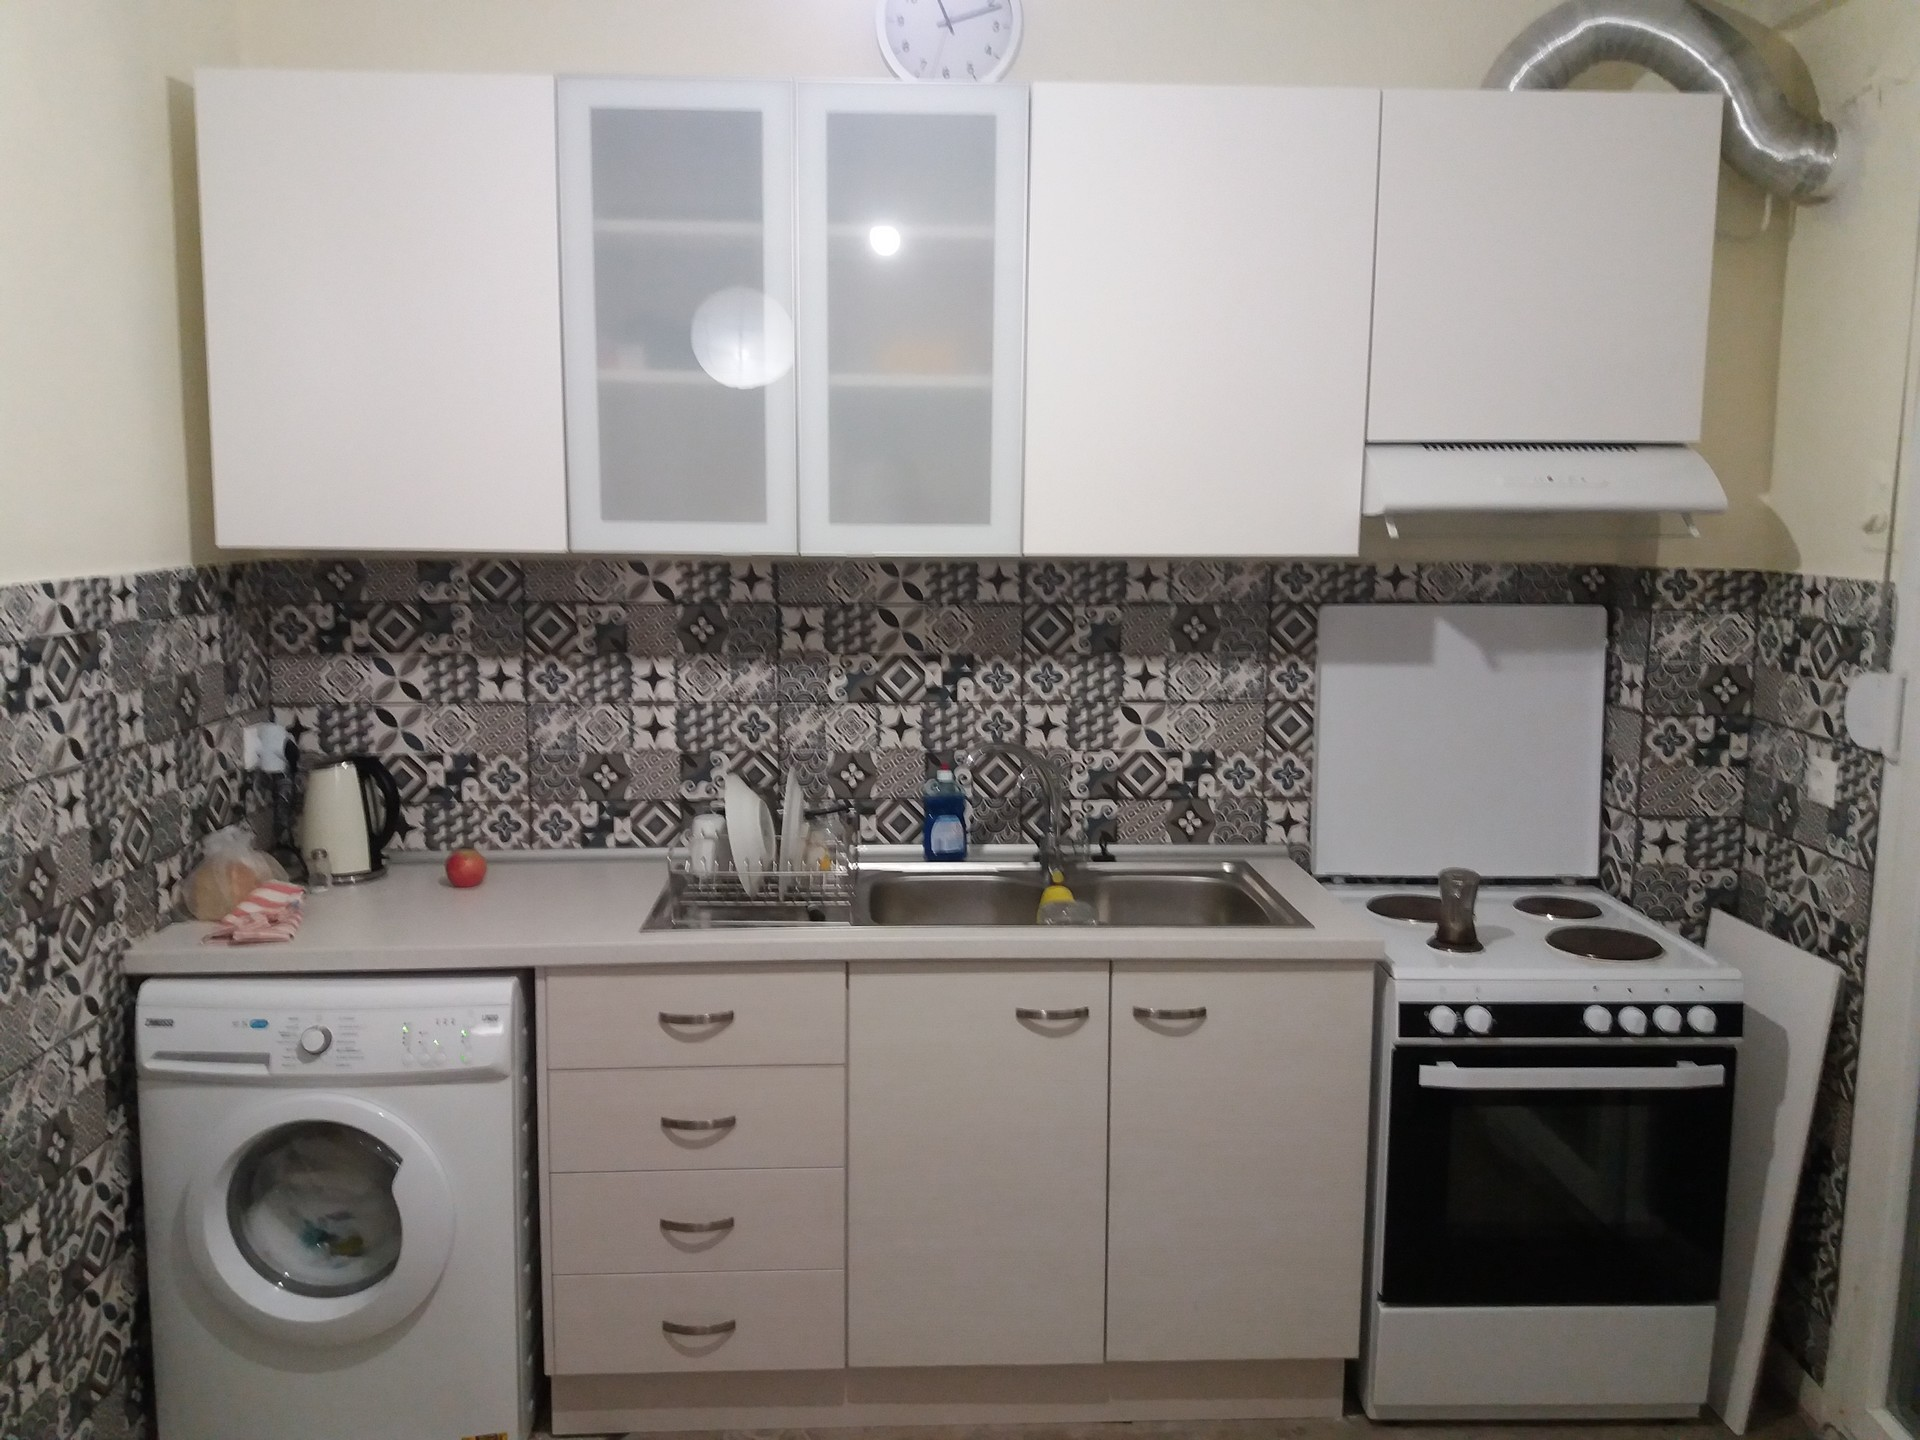 TWO ROOM FOR TWO FRENDS Thessaloniki 15 min from university